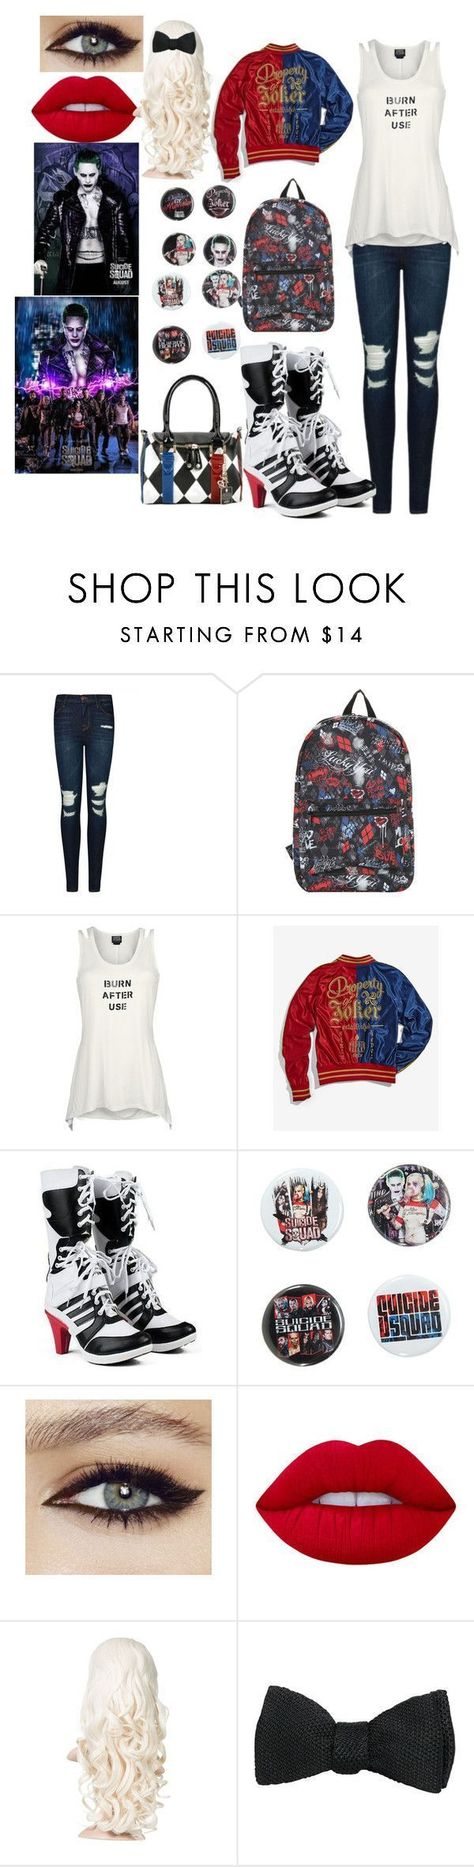 First day of school outfit (S.S) by lewandowski2017 ❤ liked on Polyvore feat...  #first #le... #firstdayofschooloutfits First day of school outfit (S.S) by lewandowski2017 ❤ liked on Polyvore feat...  #first #lewandowski2017 #liked #outfit #polyvore #school #firstdayofschooloutfits First day of school outfit (S.S) by lewandowski2017 ❤ liked on Polyvore feat...  #first #le... #firstdayofschooloutfits First day of school outfit (S.S) by lewandowski2017 ❤ liked on Polyvore feat...  #first #